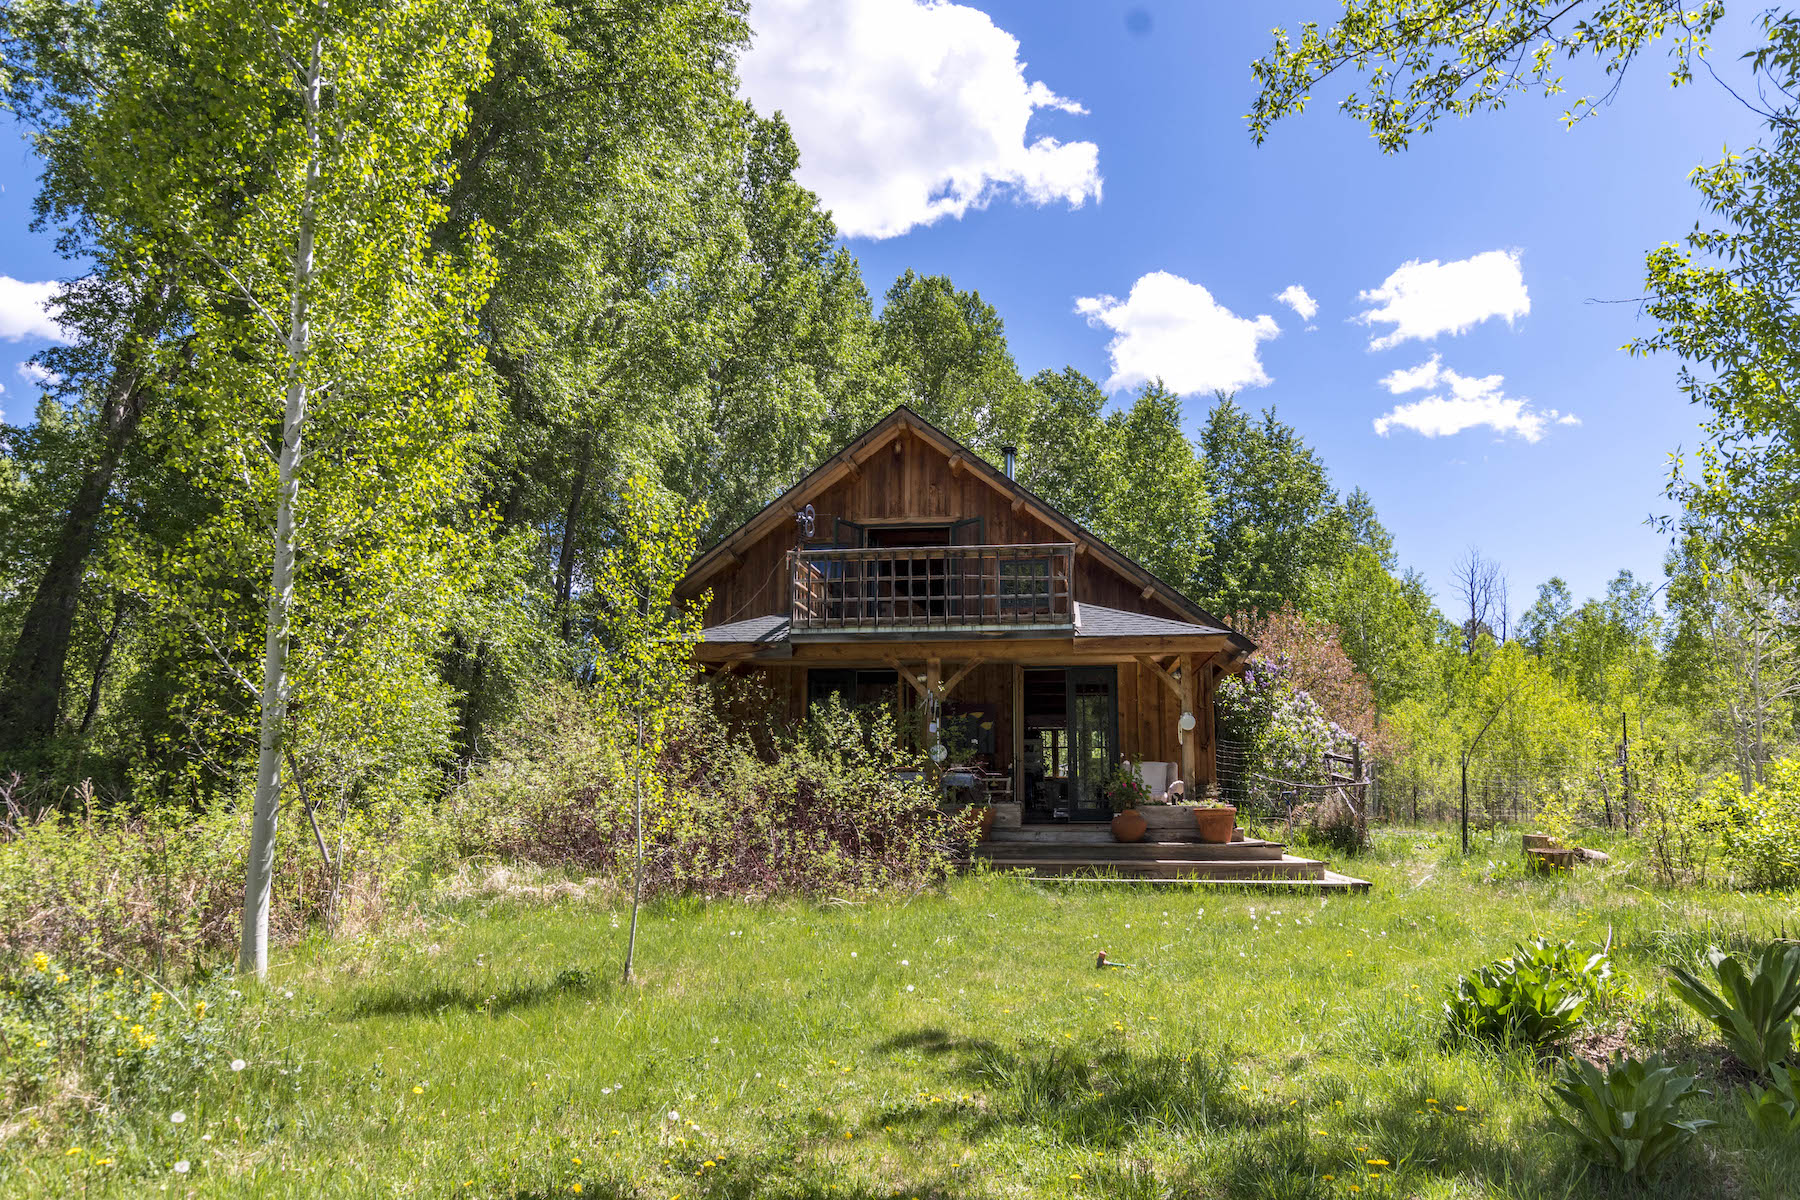 Single Family Homes for Active at Clear Water Farm 21055 Highway 140 Hesperus, Colorado 81326 United States